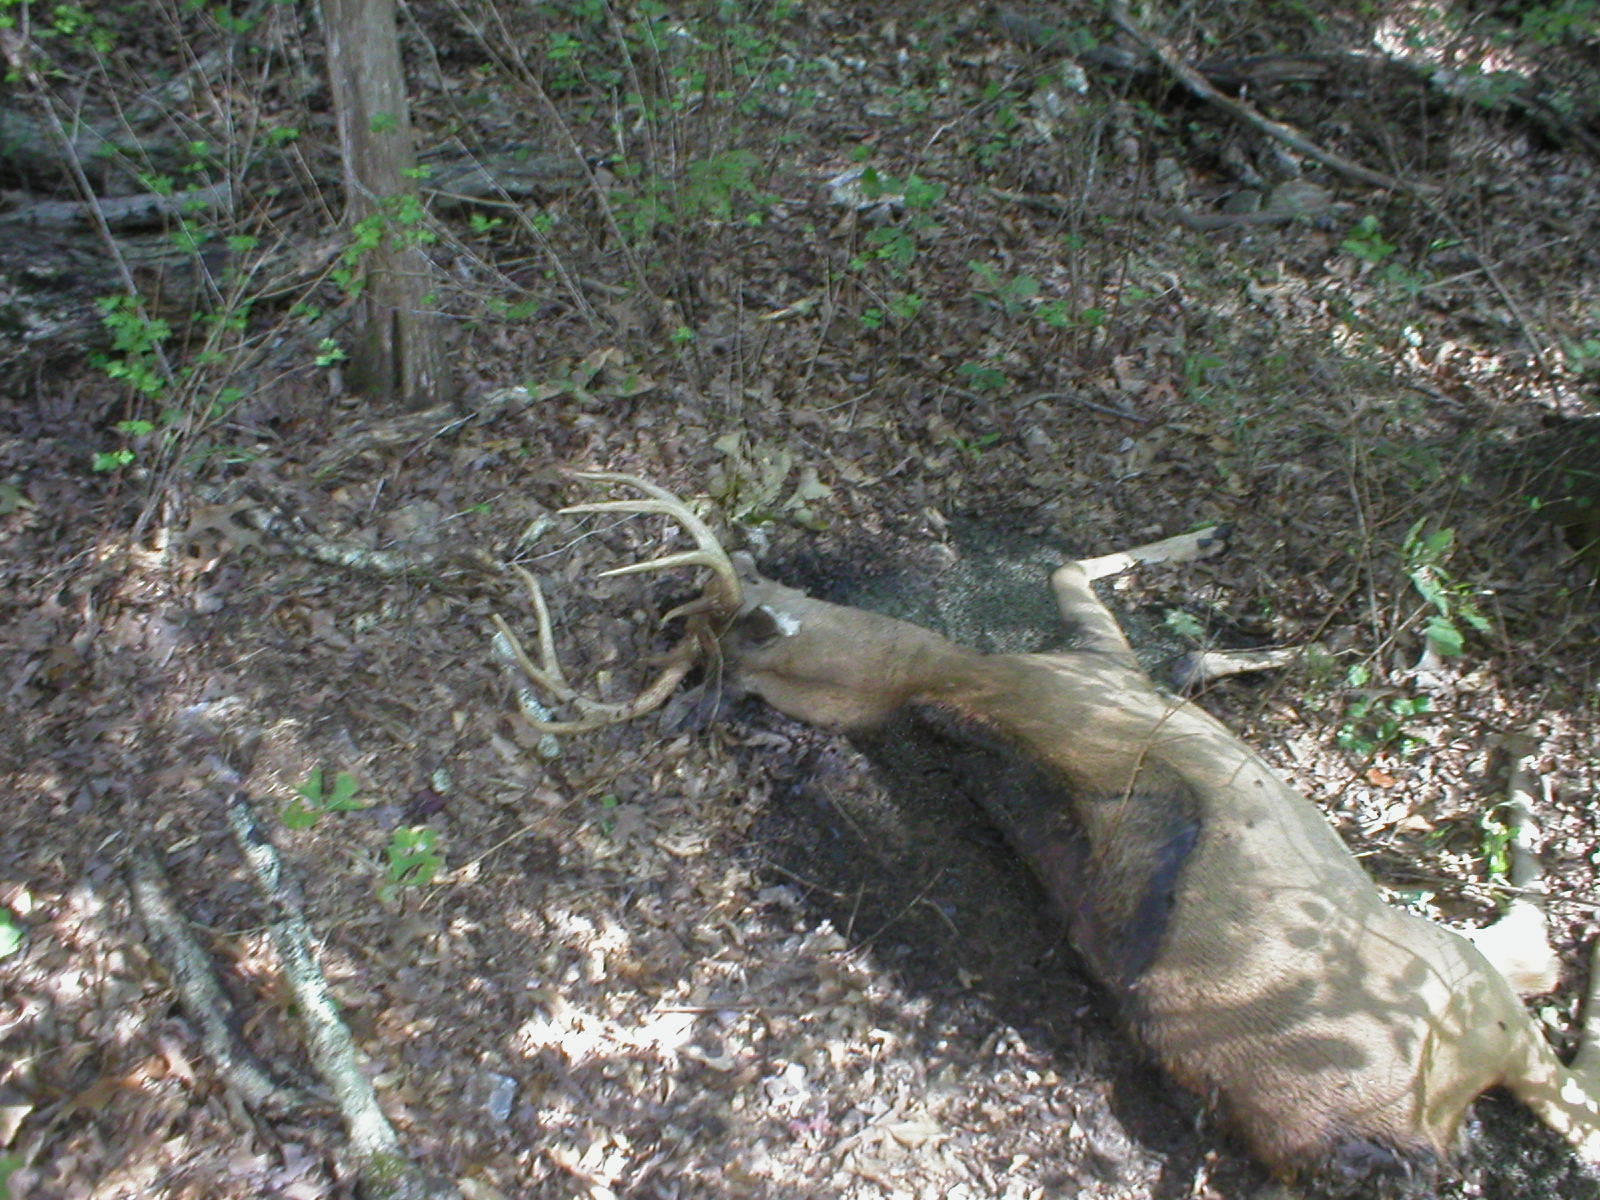 Dead Whitetail Buck found near a water source. Likely cause of this buck's death